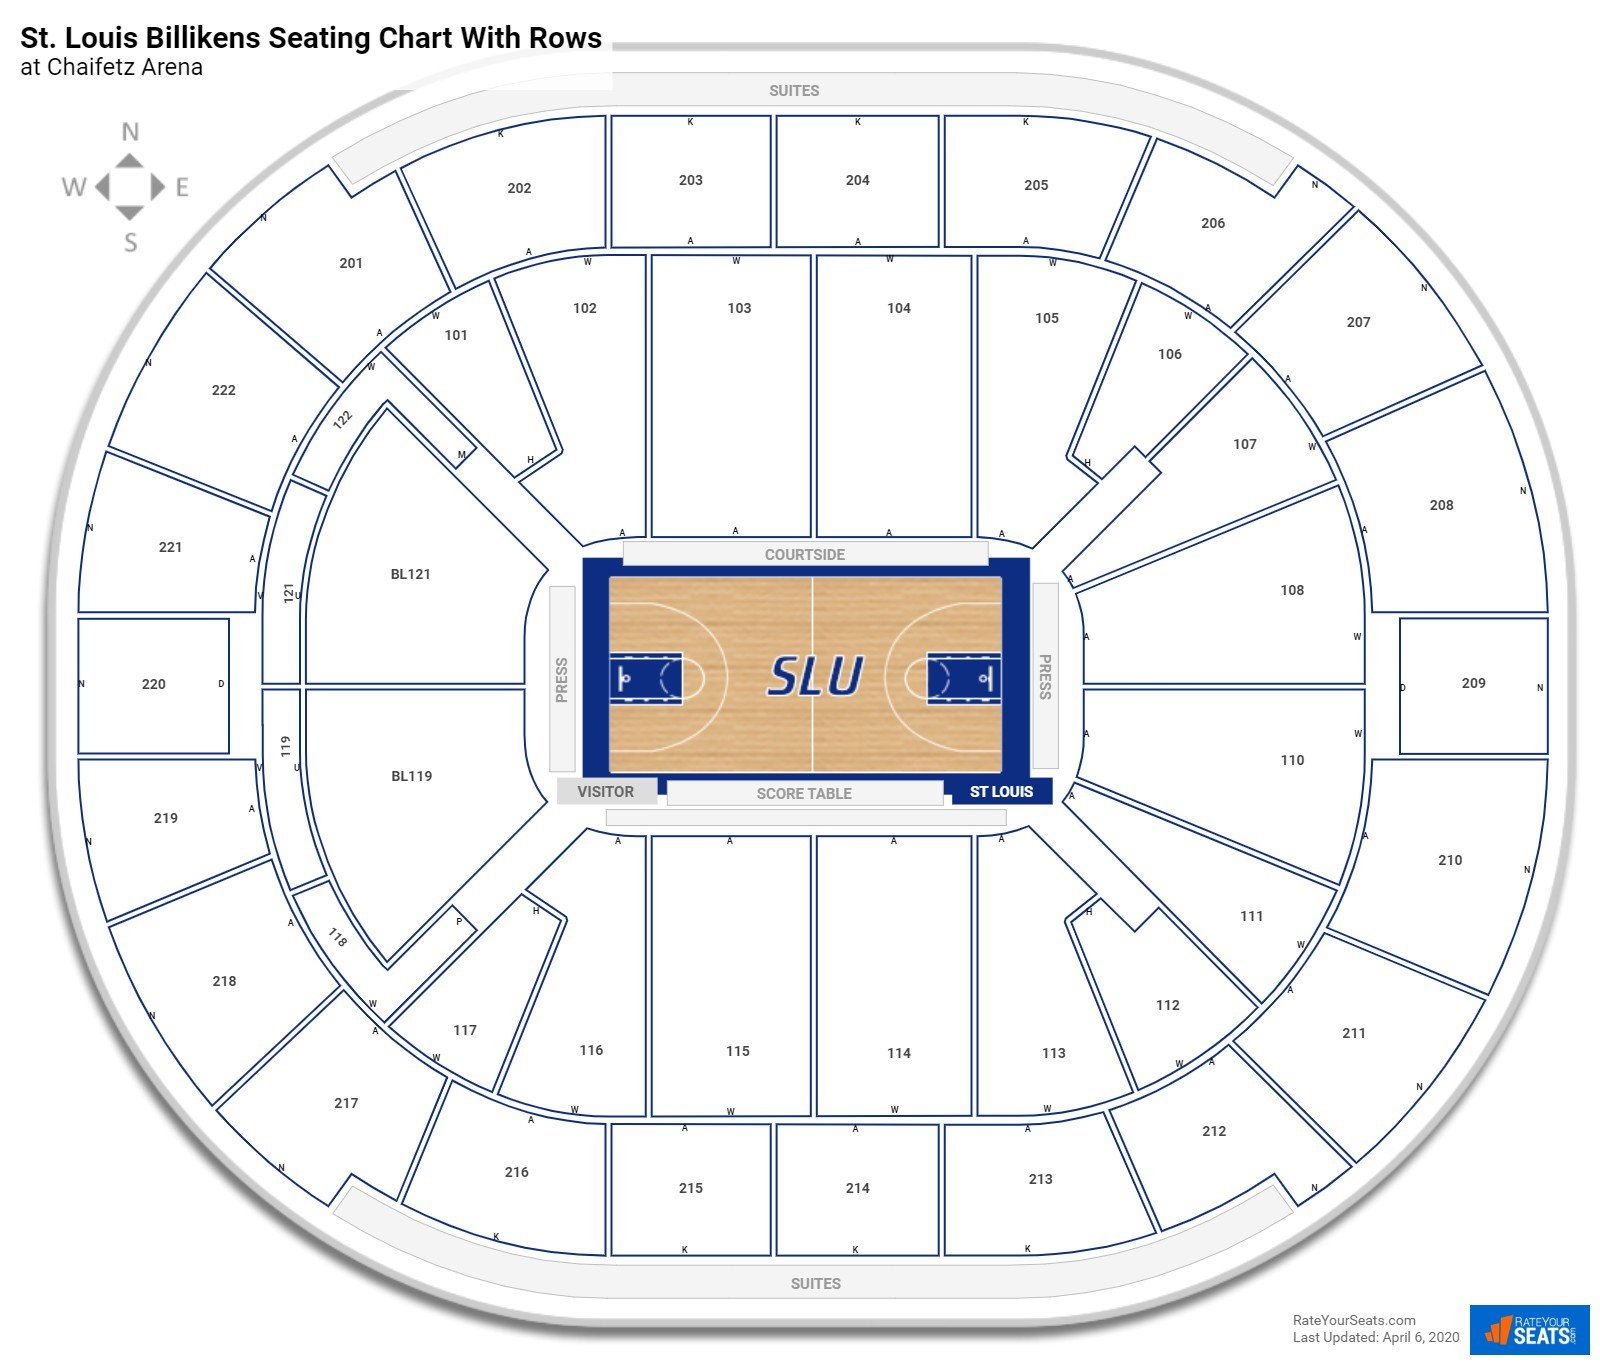 Chaifetz Arena seating chart with rows basketball